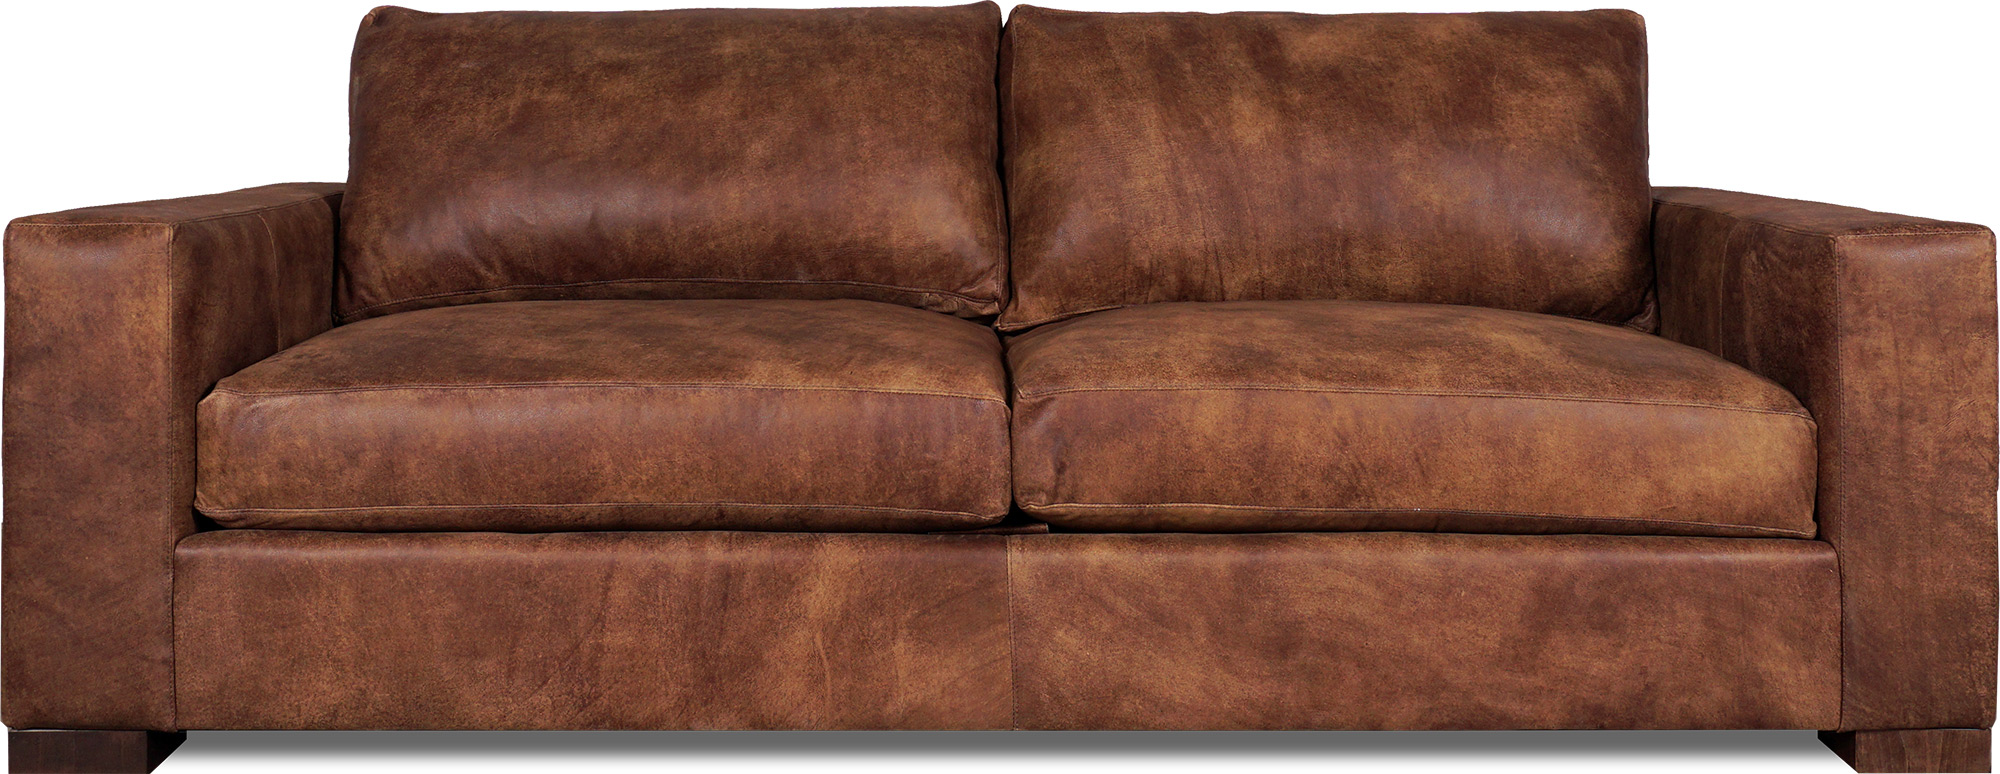 Cole Sofas And Armchairs Roger Chris